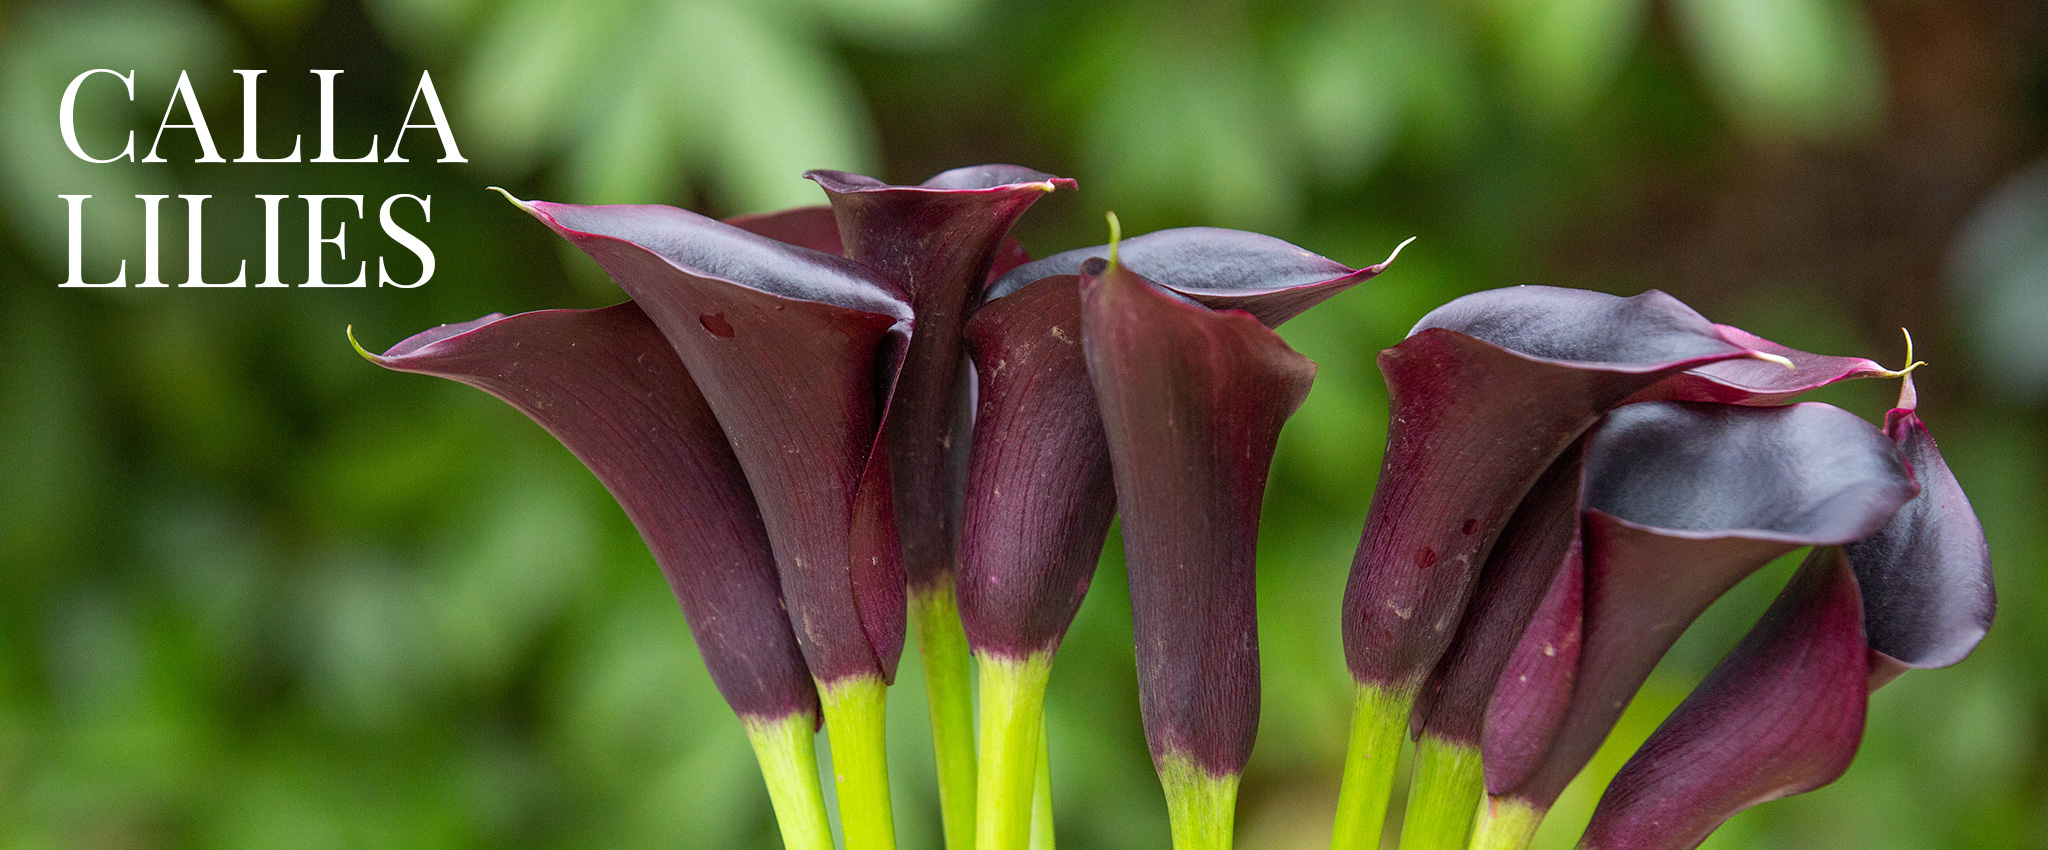 Calla lilies tesselaar plant a range of colourful calla lily blooms for a succession of fabulous flowers through summer great in the garden and great for picking calla lilies izmirmasajfo